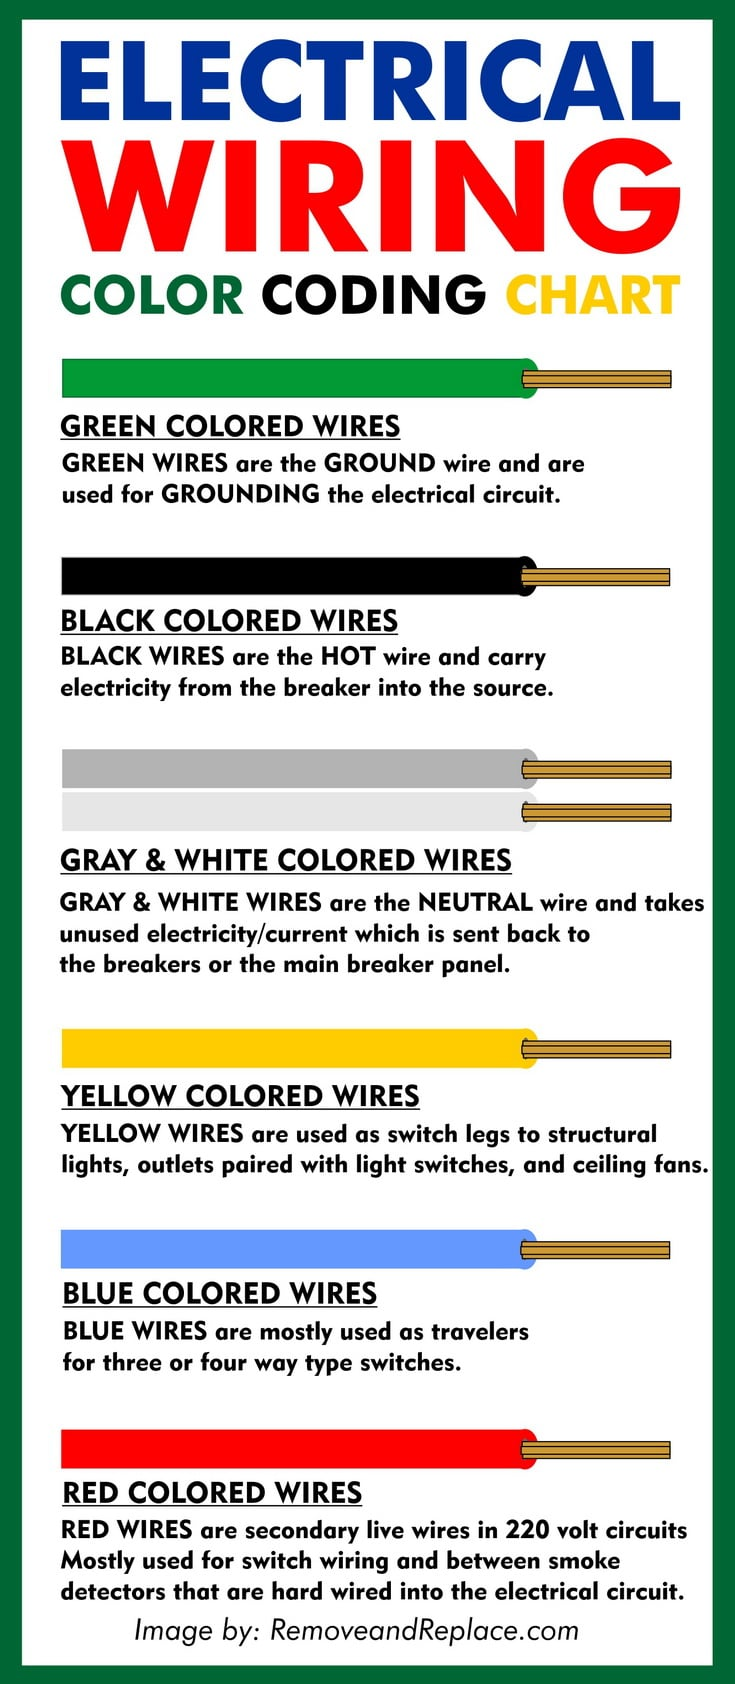 doorbell wiring colors electrical wire color codes wiring colors chart  electrical wire color codes wiring